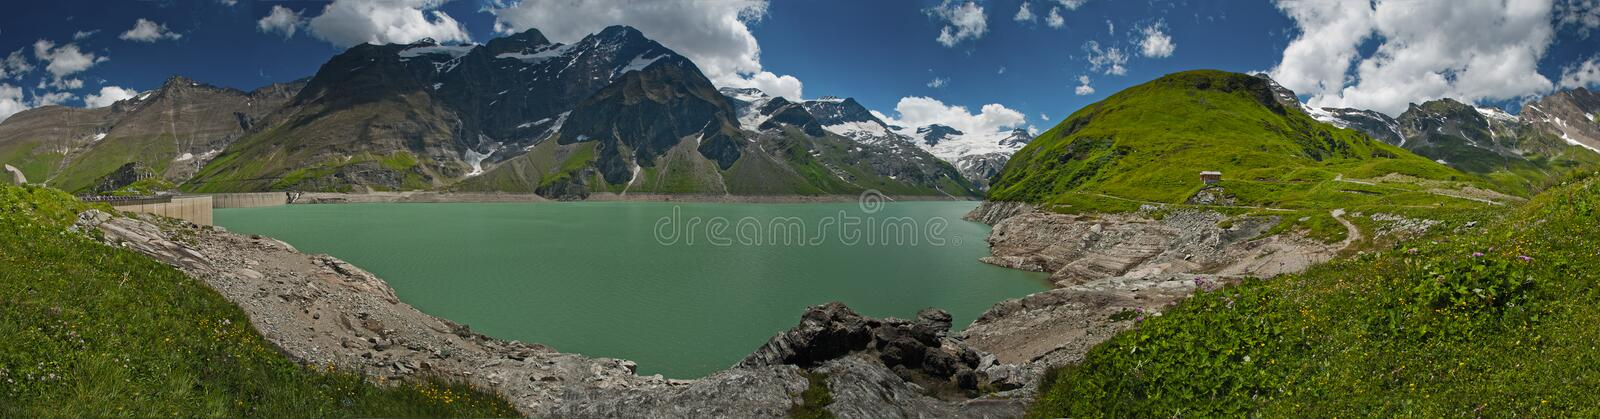 Kaprun Dam, Lake And Alps Stock Photos